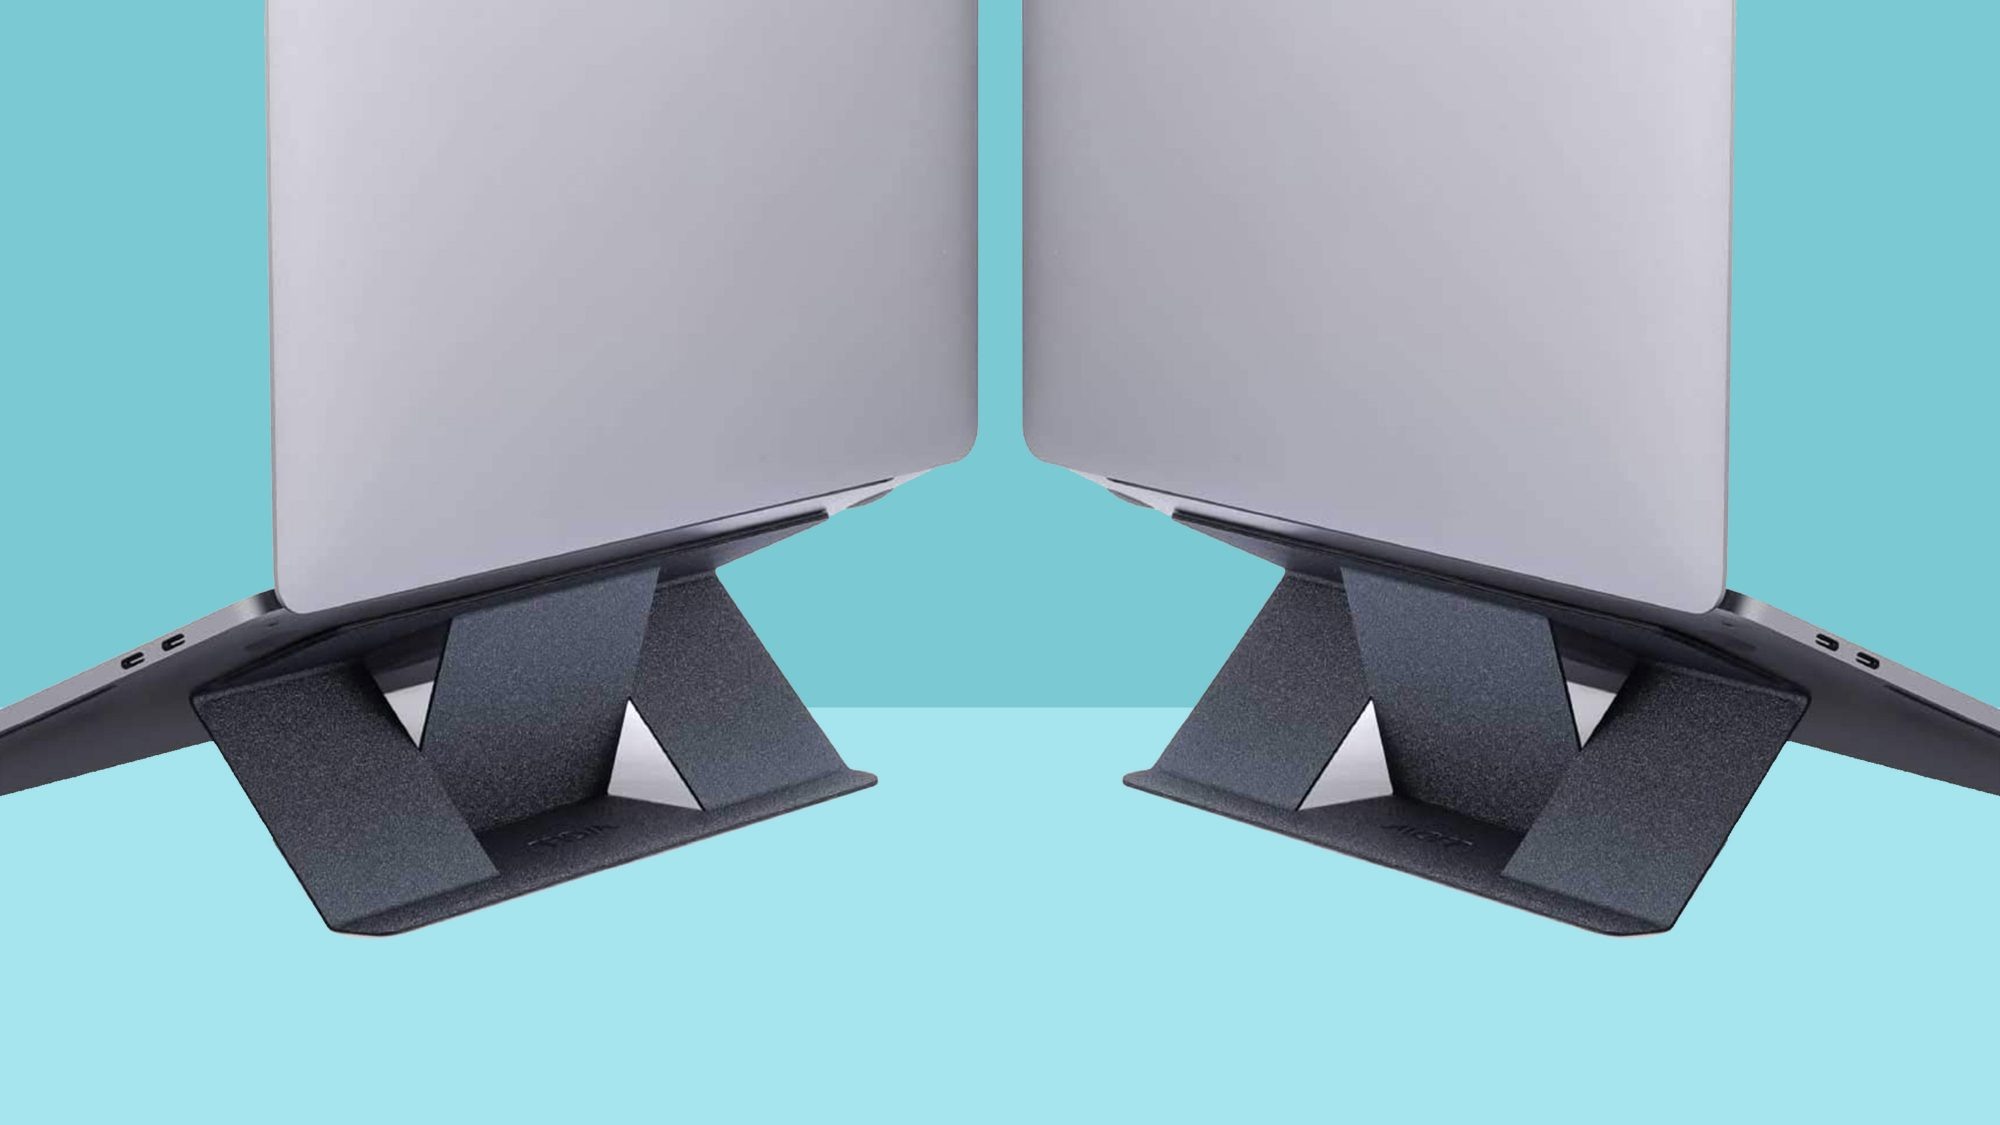 moft invisible compact laptop stand